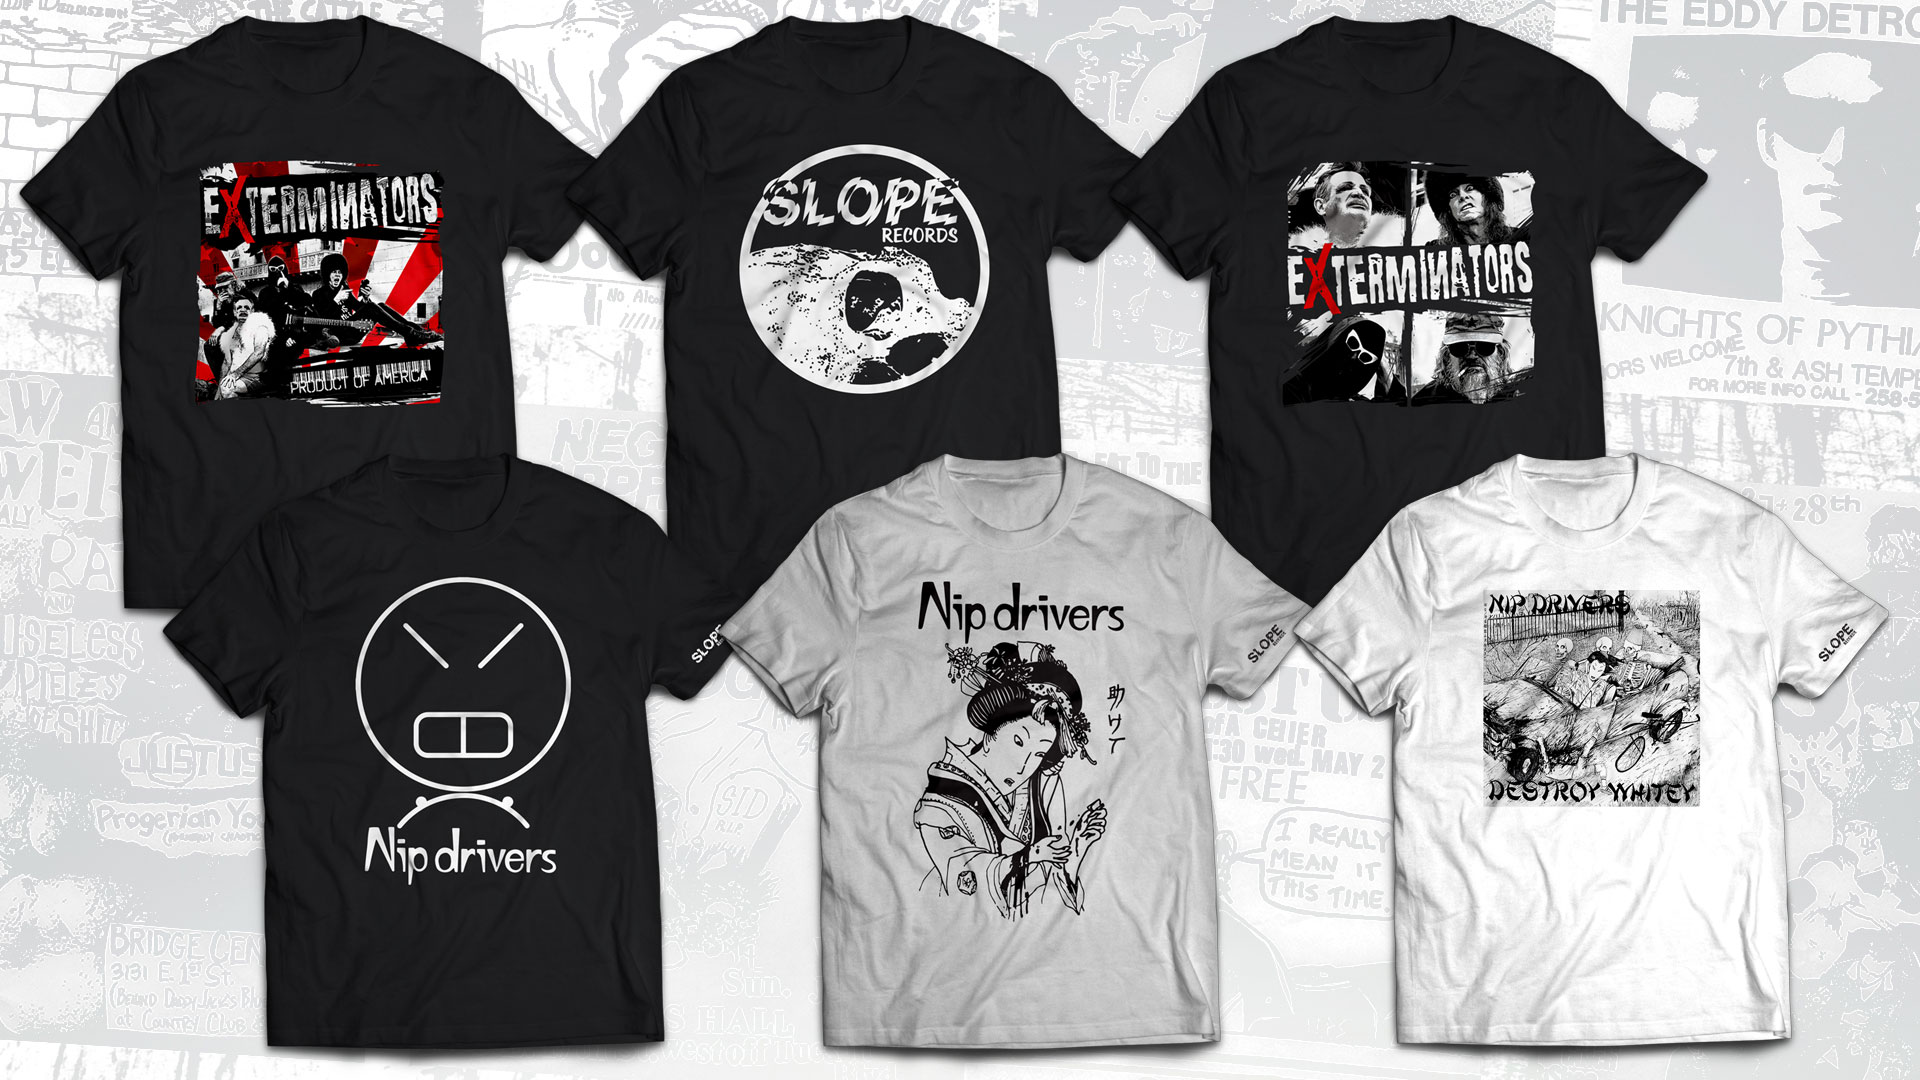 Slope Records T-Shirts Are Here